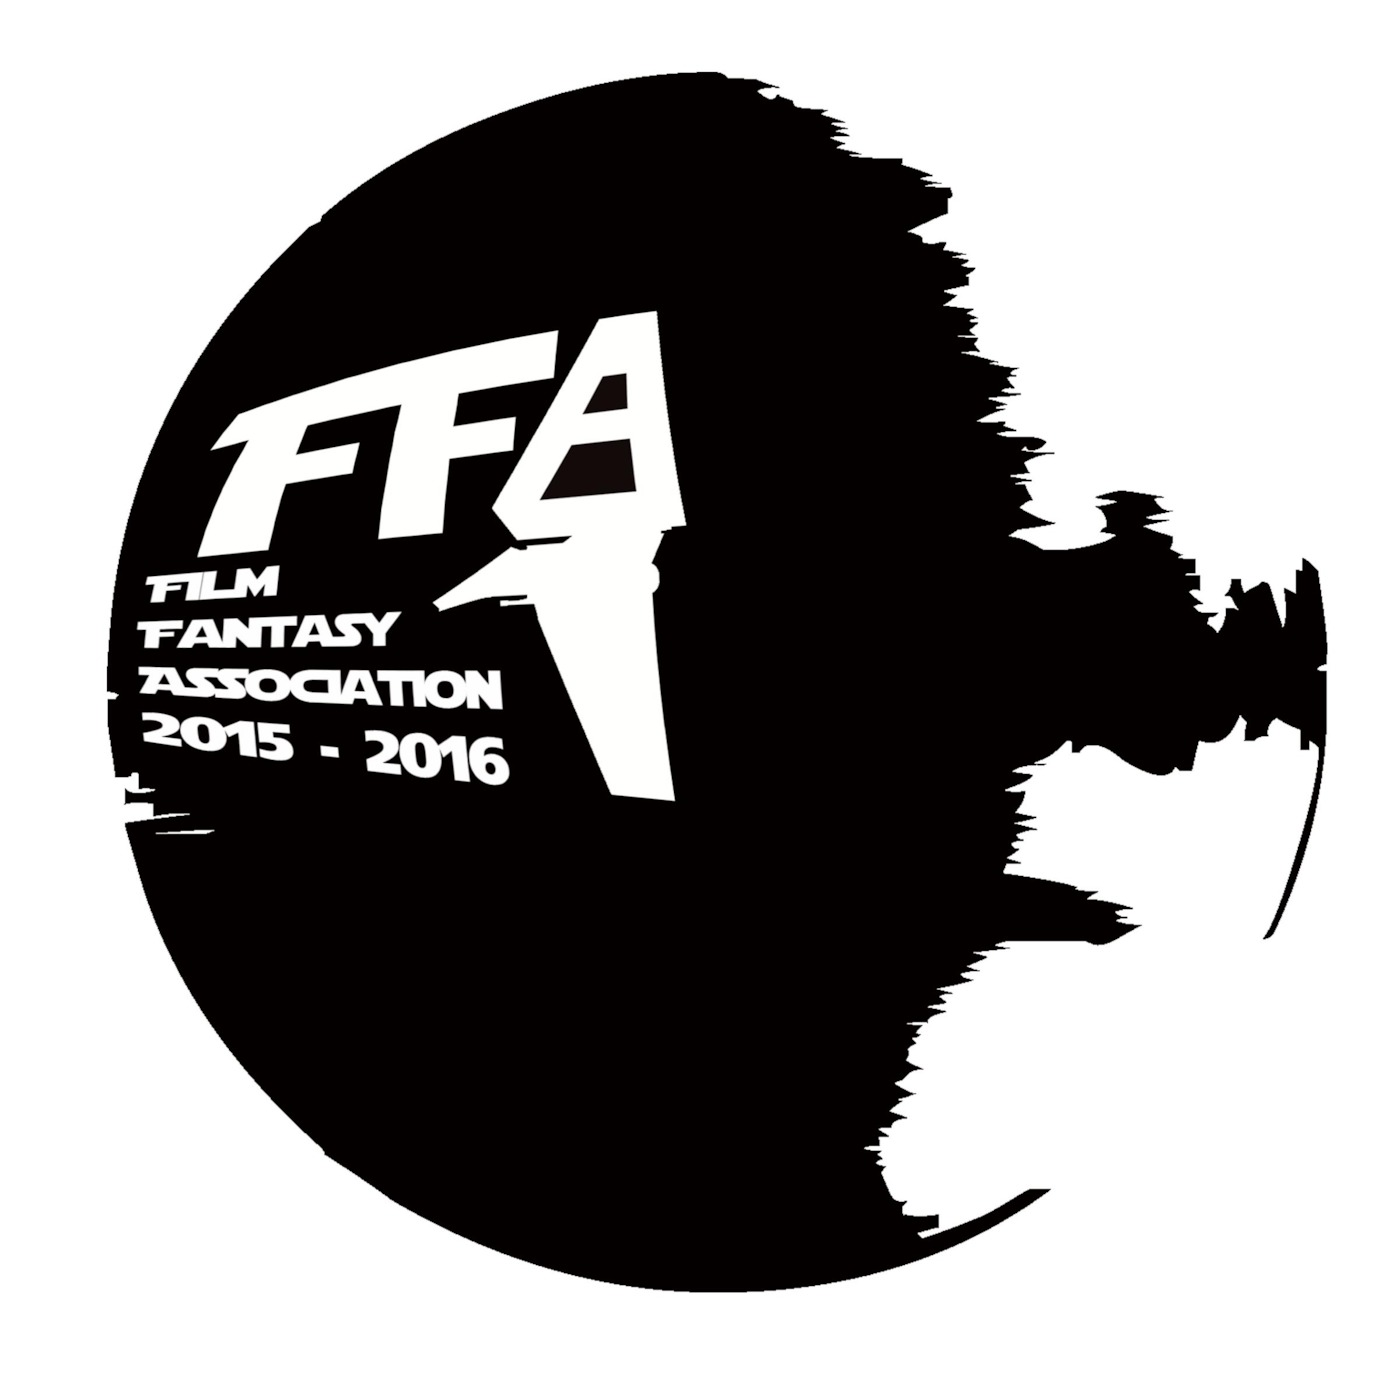 Film Fantasy Association Podcast